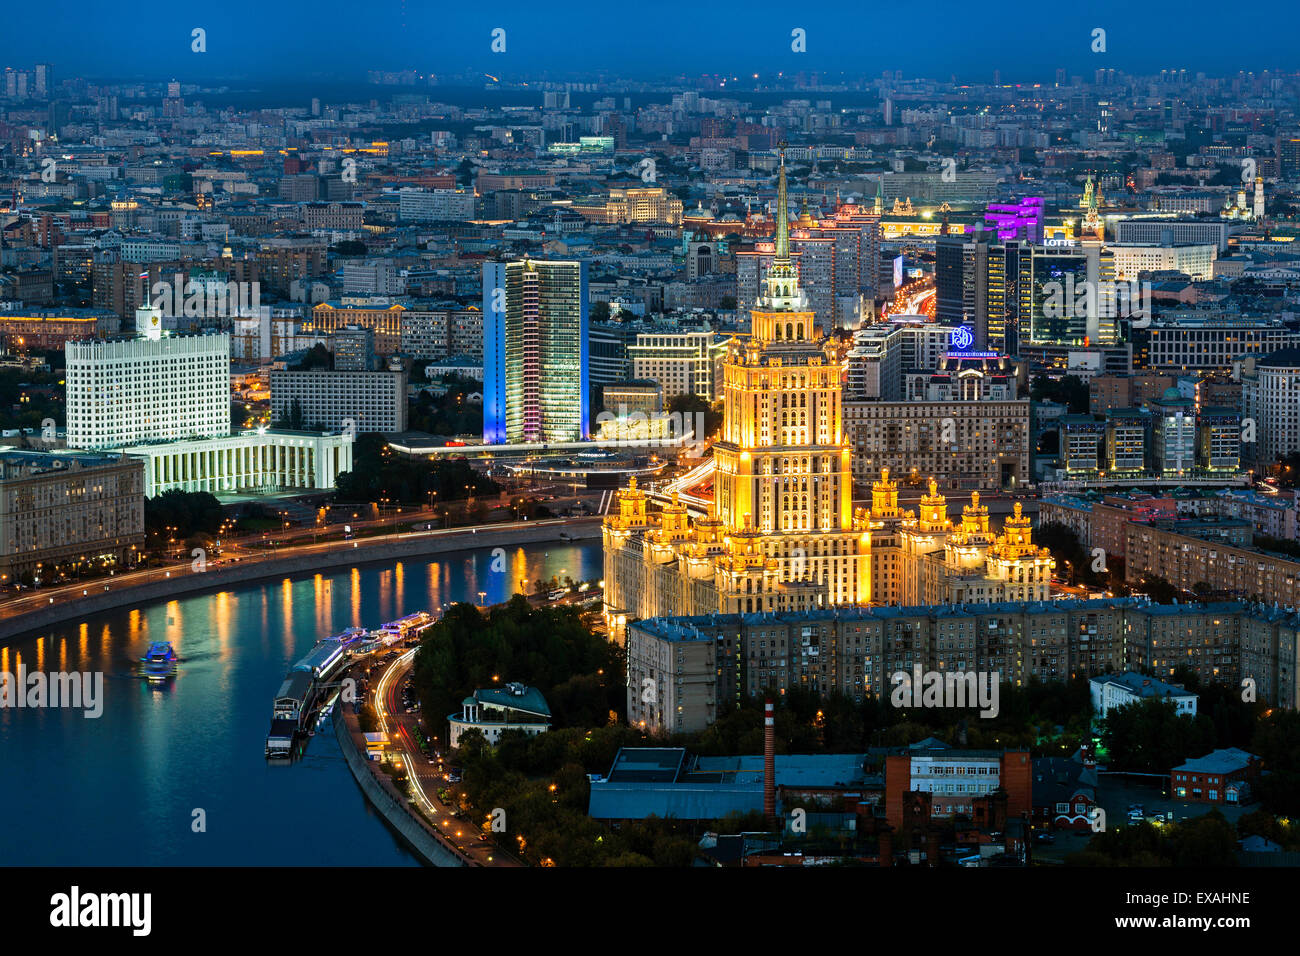 Elevated view over the Moskva River embankment, Ukraine Hotel and the Russian White House, Moscow, Russia, Europe - Stock Image